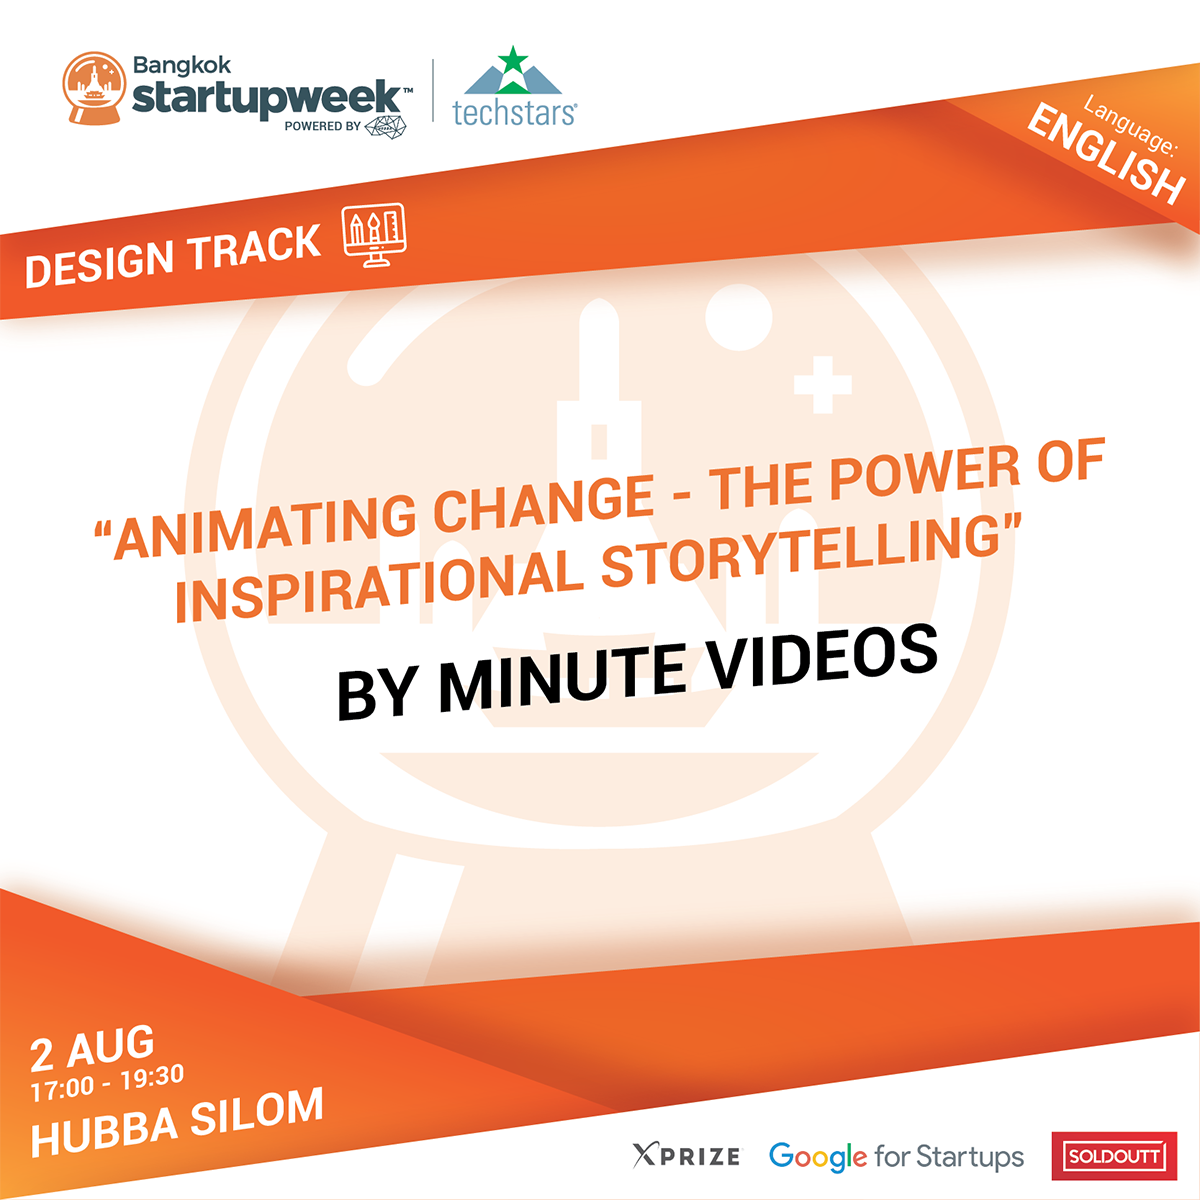 Animating Change - The Power of Inspirational Storytelling